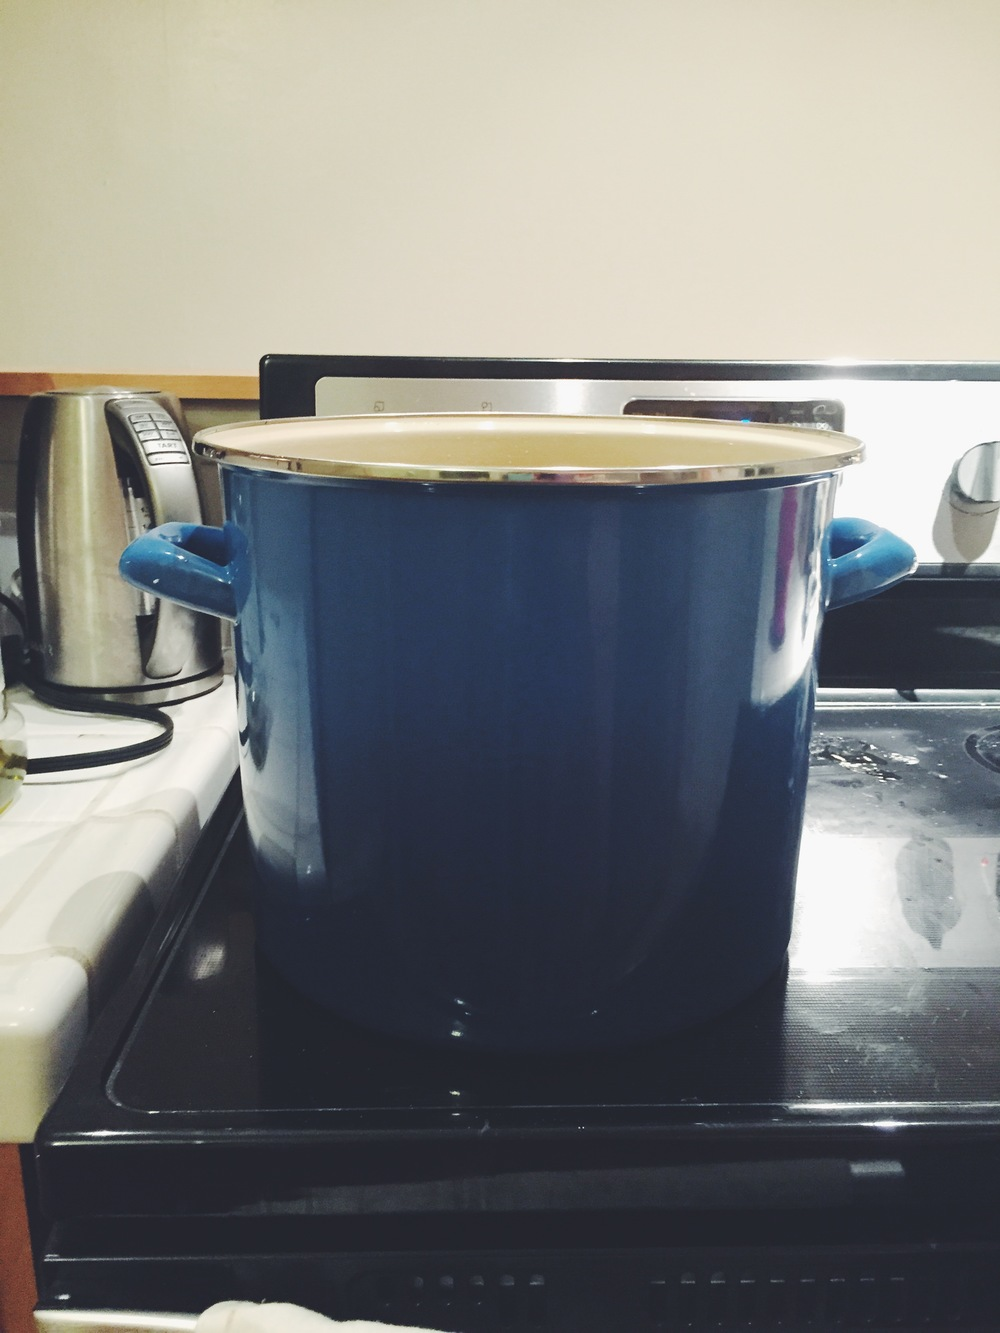 This is my very large and very favorite stockpot! It was a wedding gift from an important friend of ours. It can hold so much soup, pasta sauce, and chili! You can find this Le Creuset Stockpot  here.